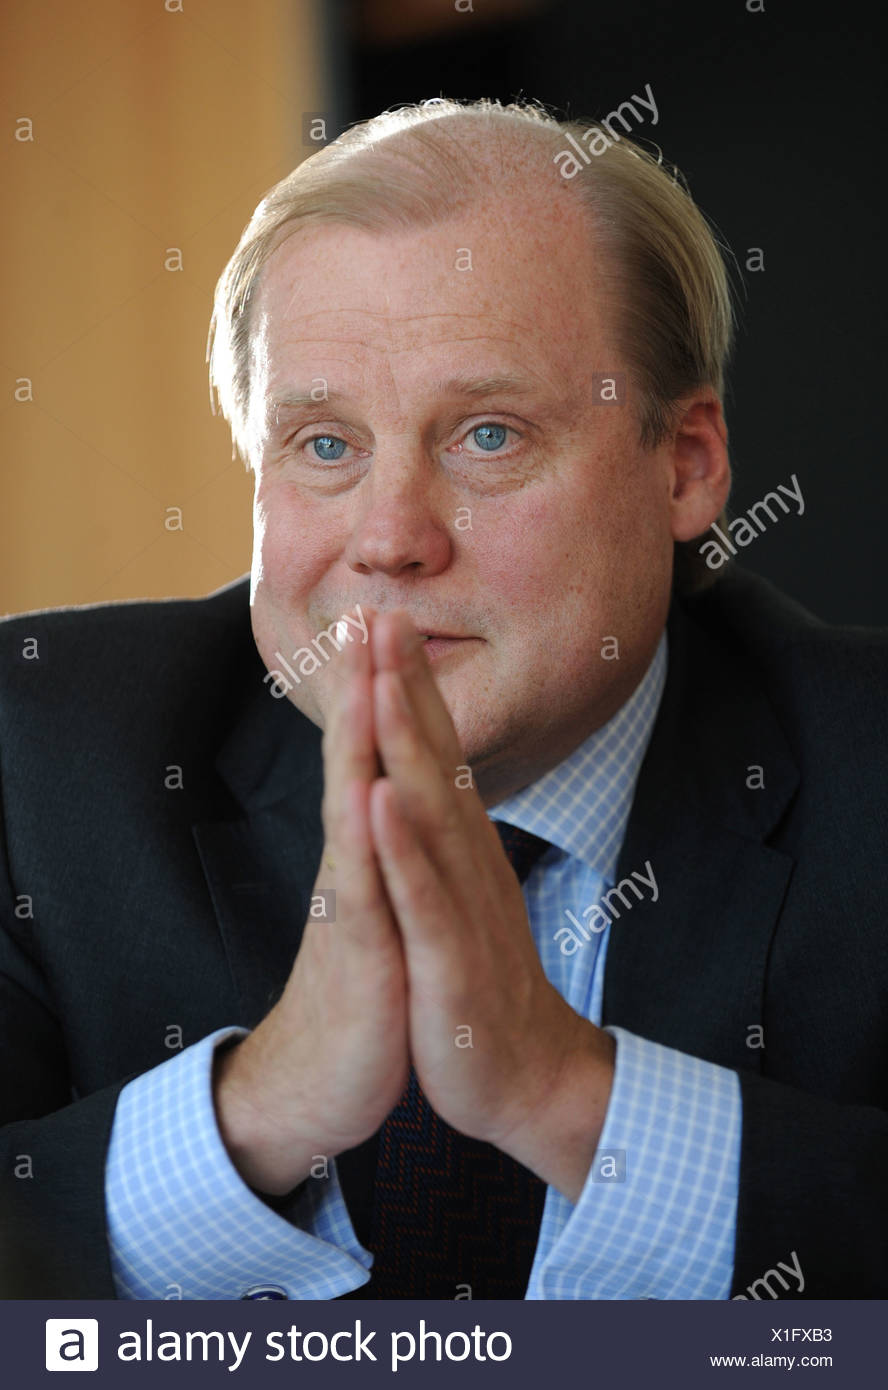 Berlin, Germany, Tuomo Hatakka, Vattenfall Europe AG, in an interview - Stock Image